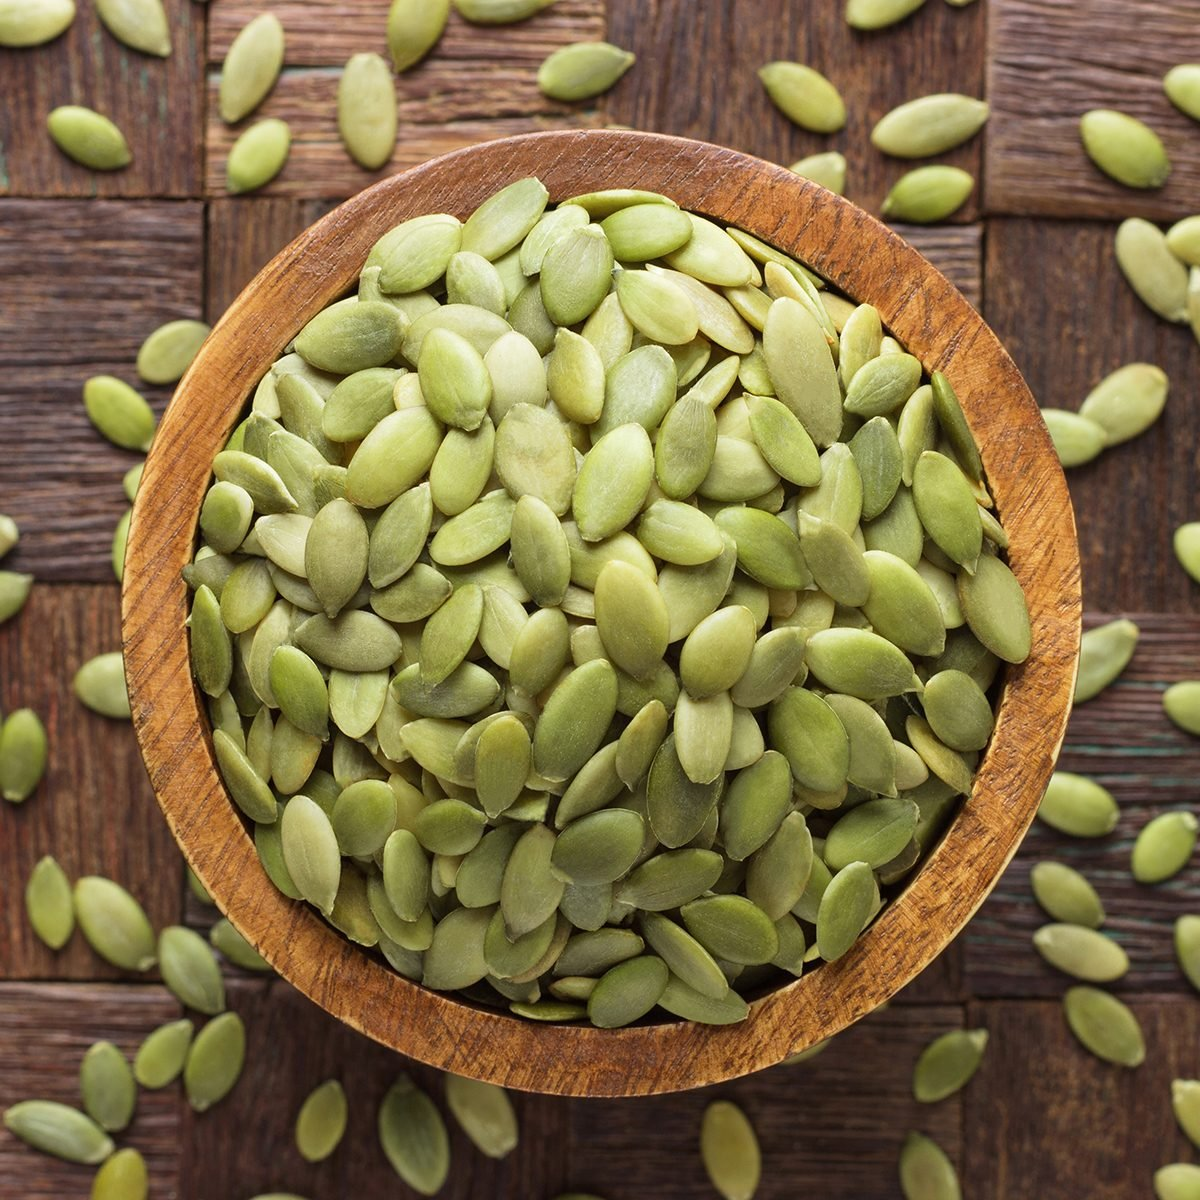 pumpkin seeds peeled in bowl on wooden table background.